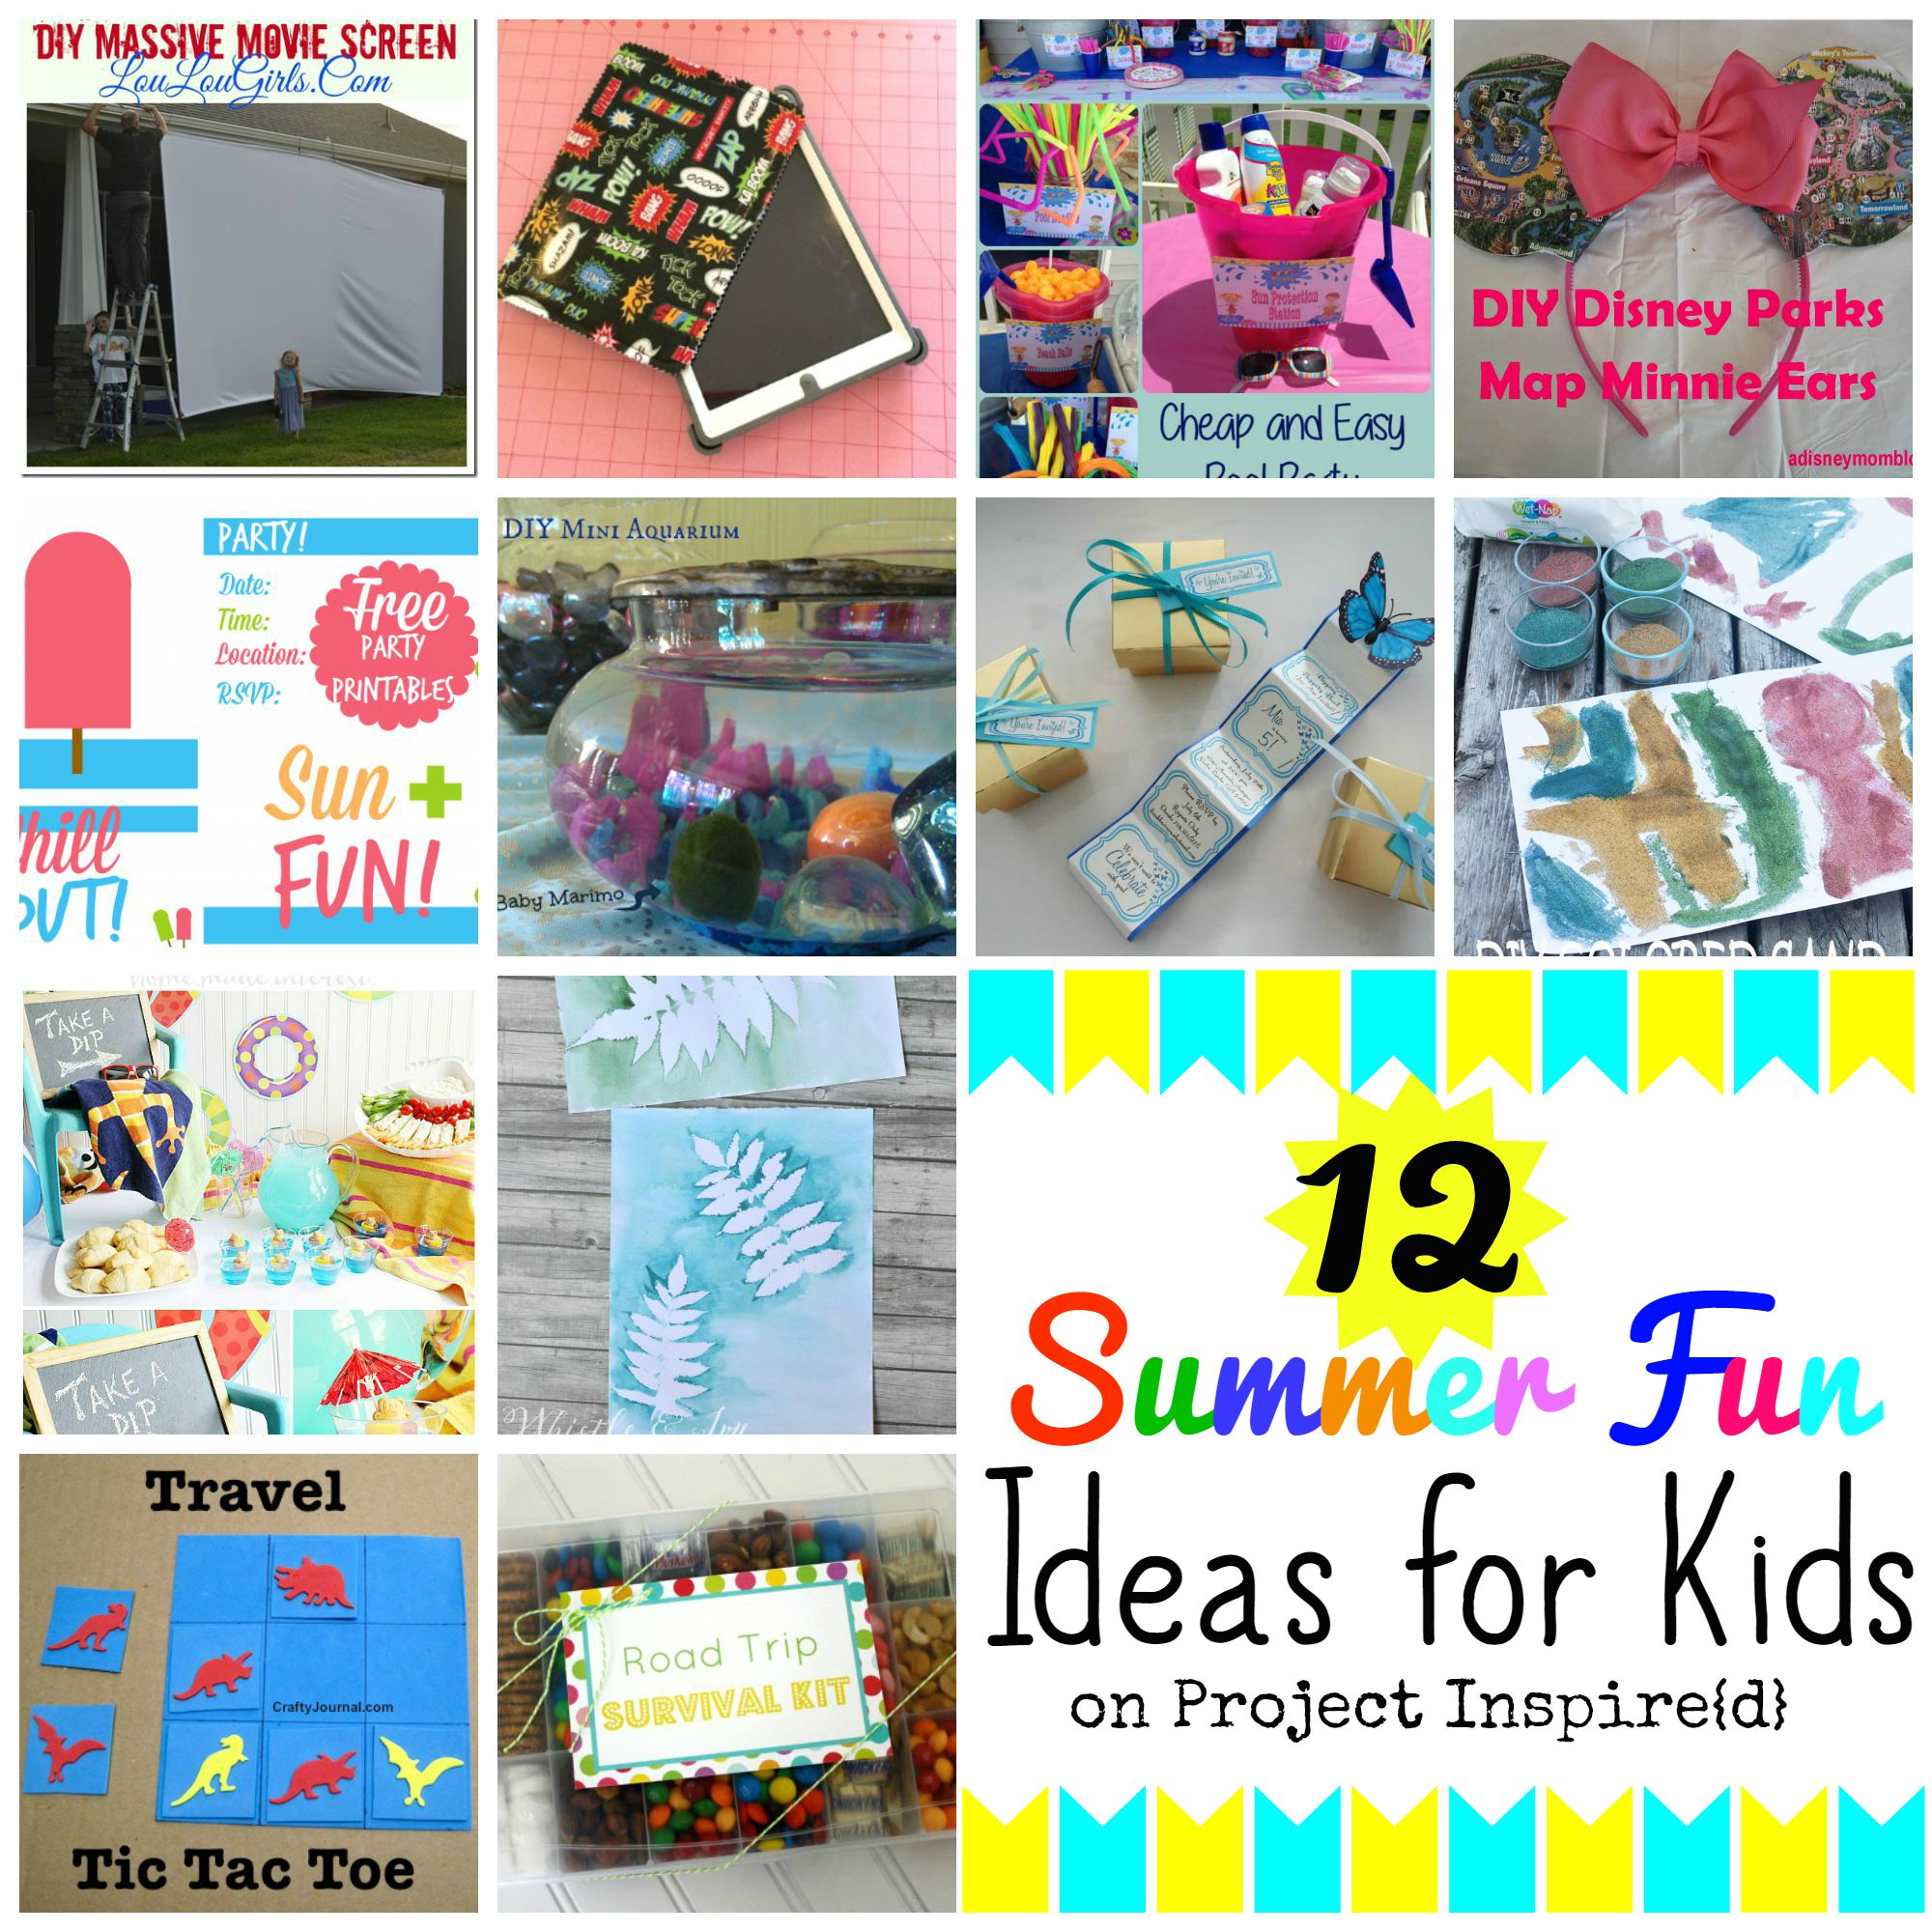 12 Summer Fun Ideas for Kids